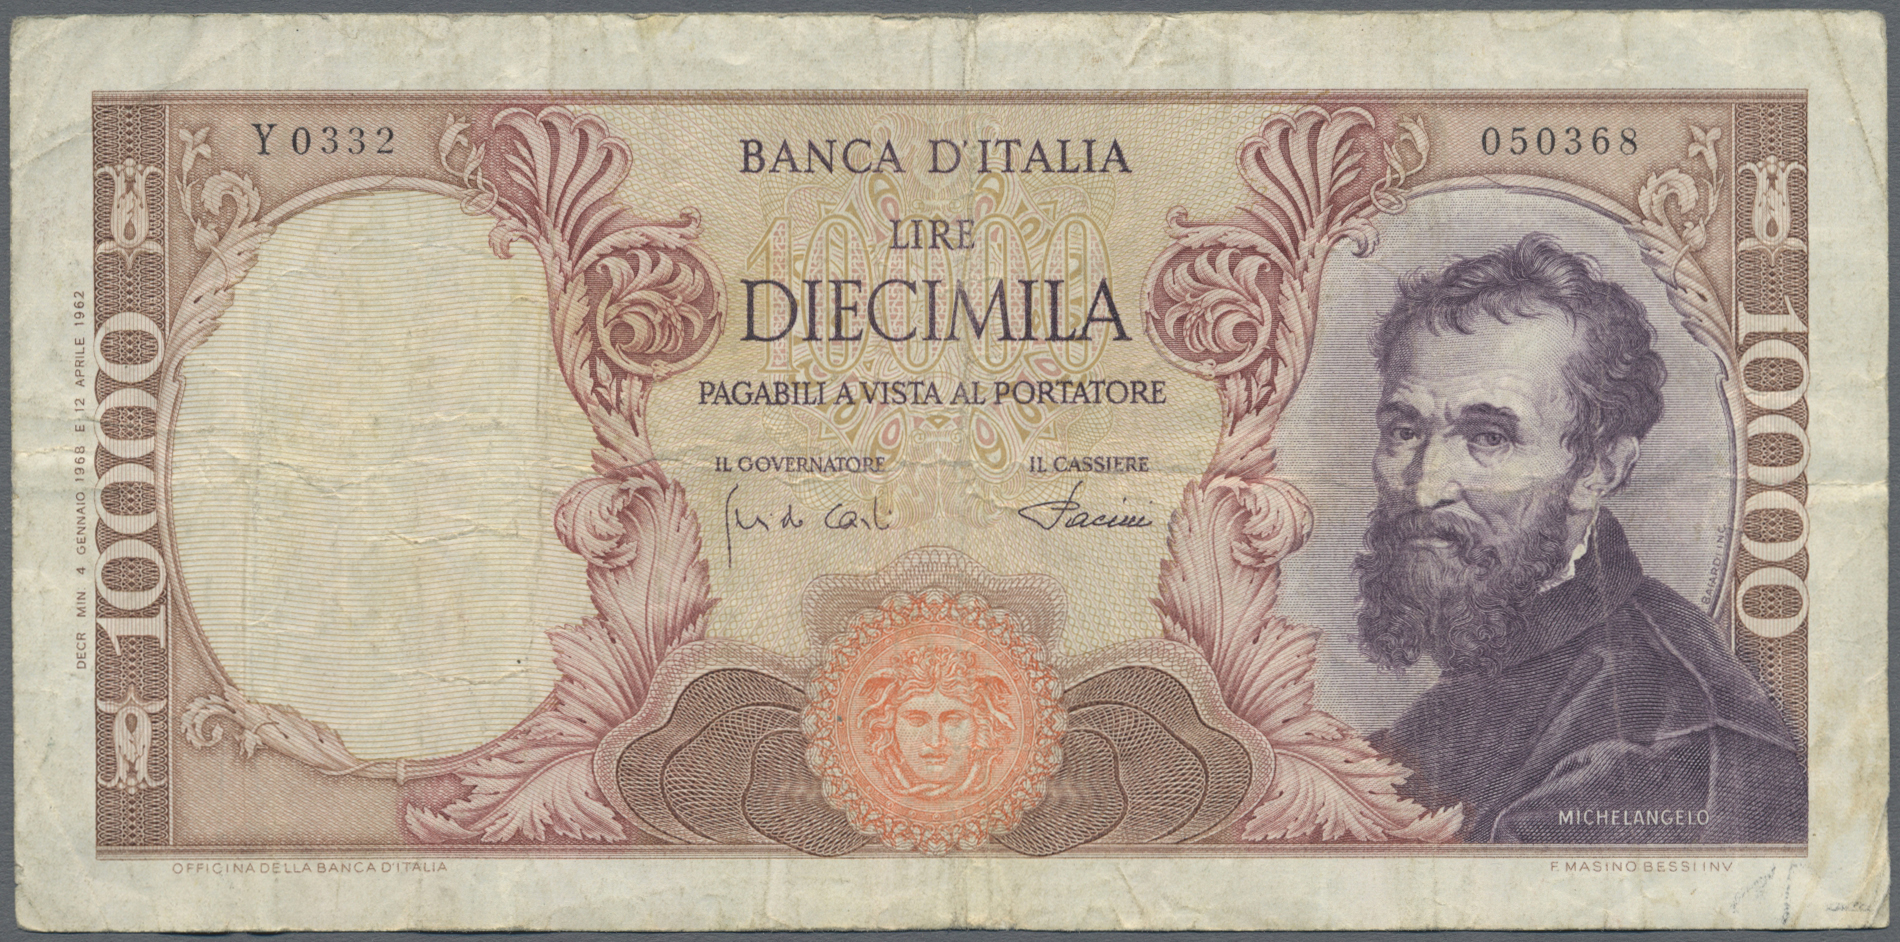 Lot 01057 - Italy / Italien | Banknoten  -  Auktionshaus Christoph Gärtner GmbH & Co. KG Sale #48 The Banknotes